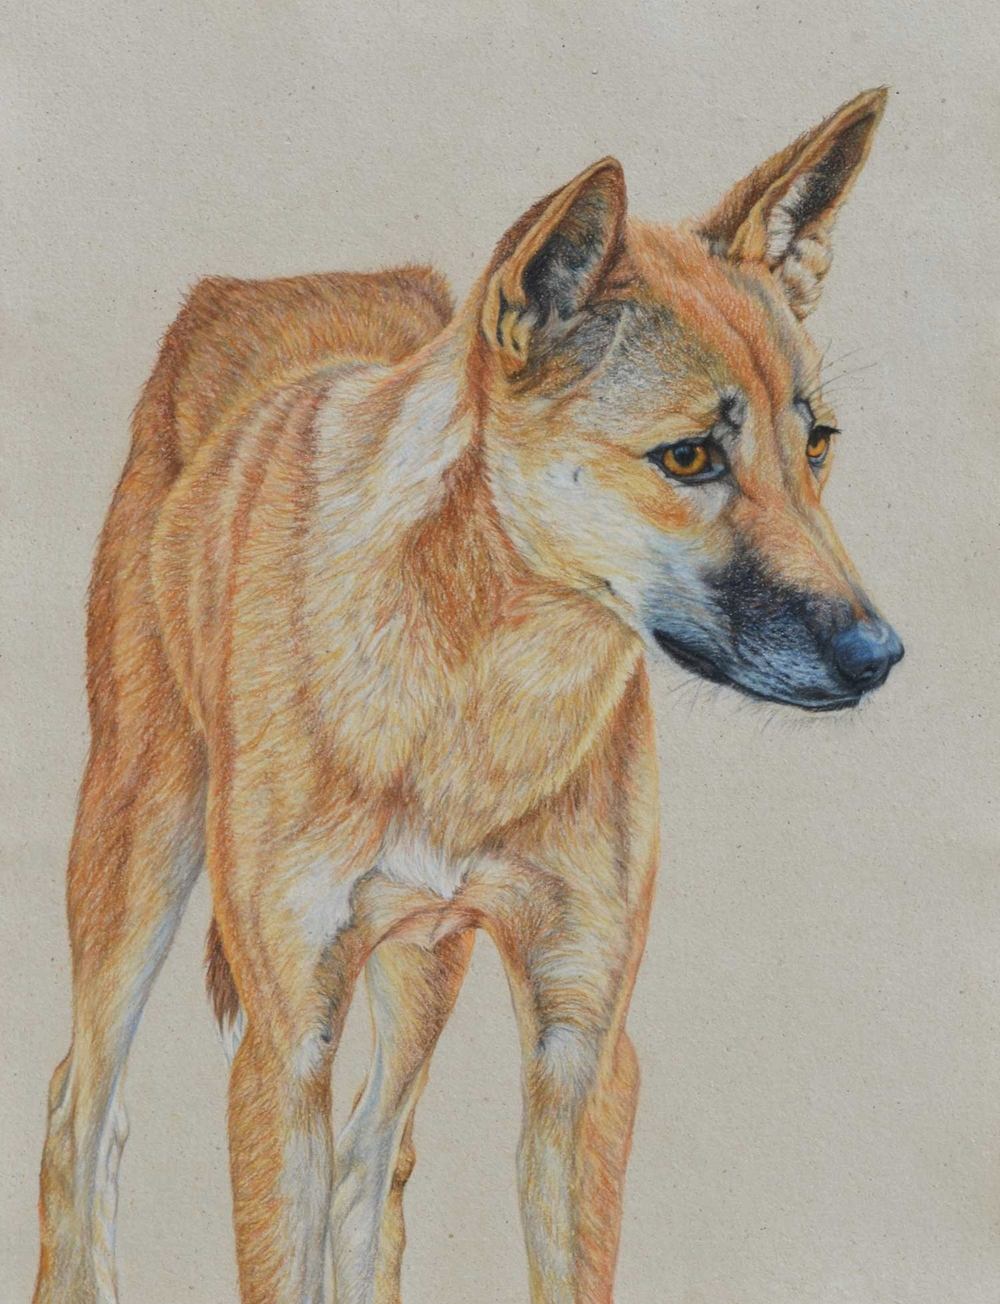 Dingo  61 x 41 CM, Pastel on handmade paper  Available as a limited edition print  $1,100